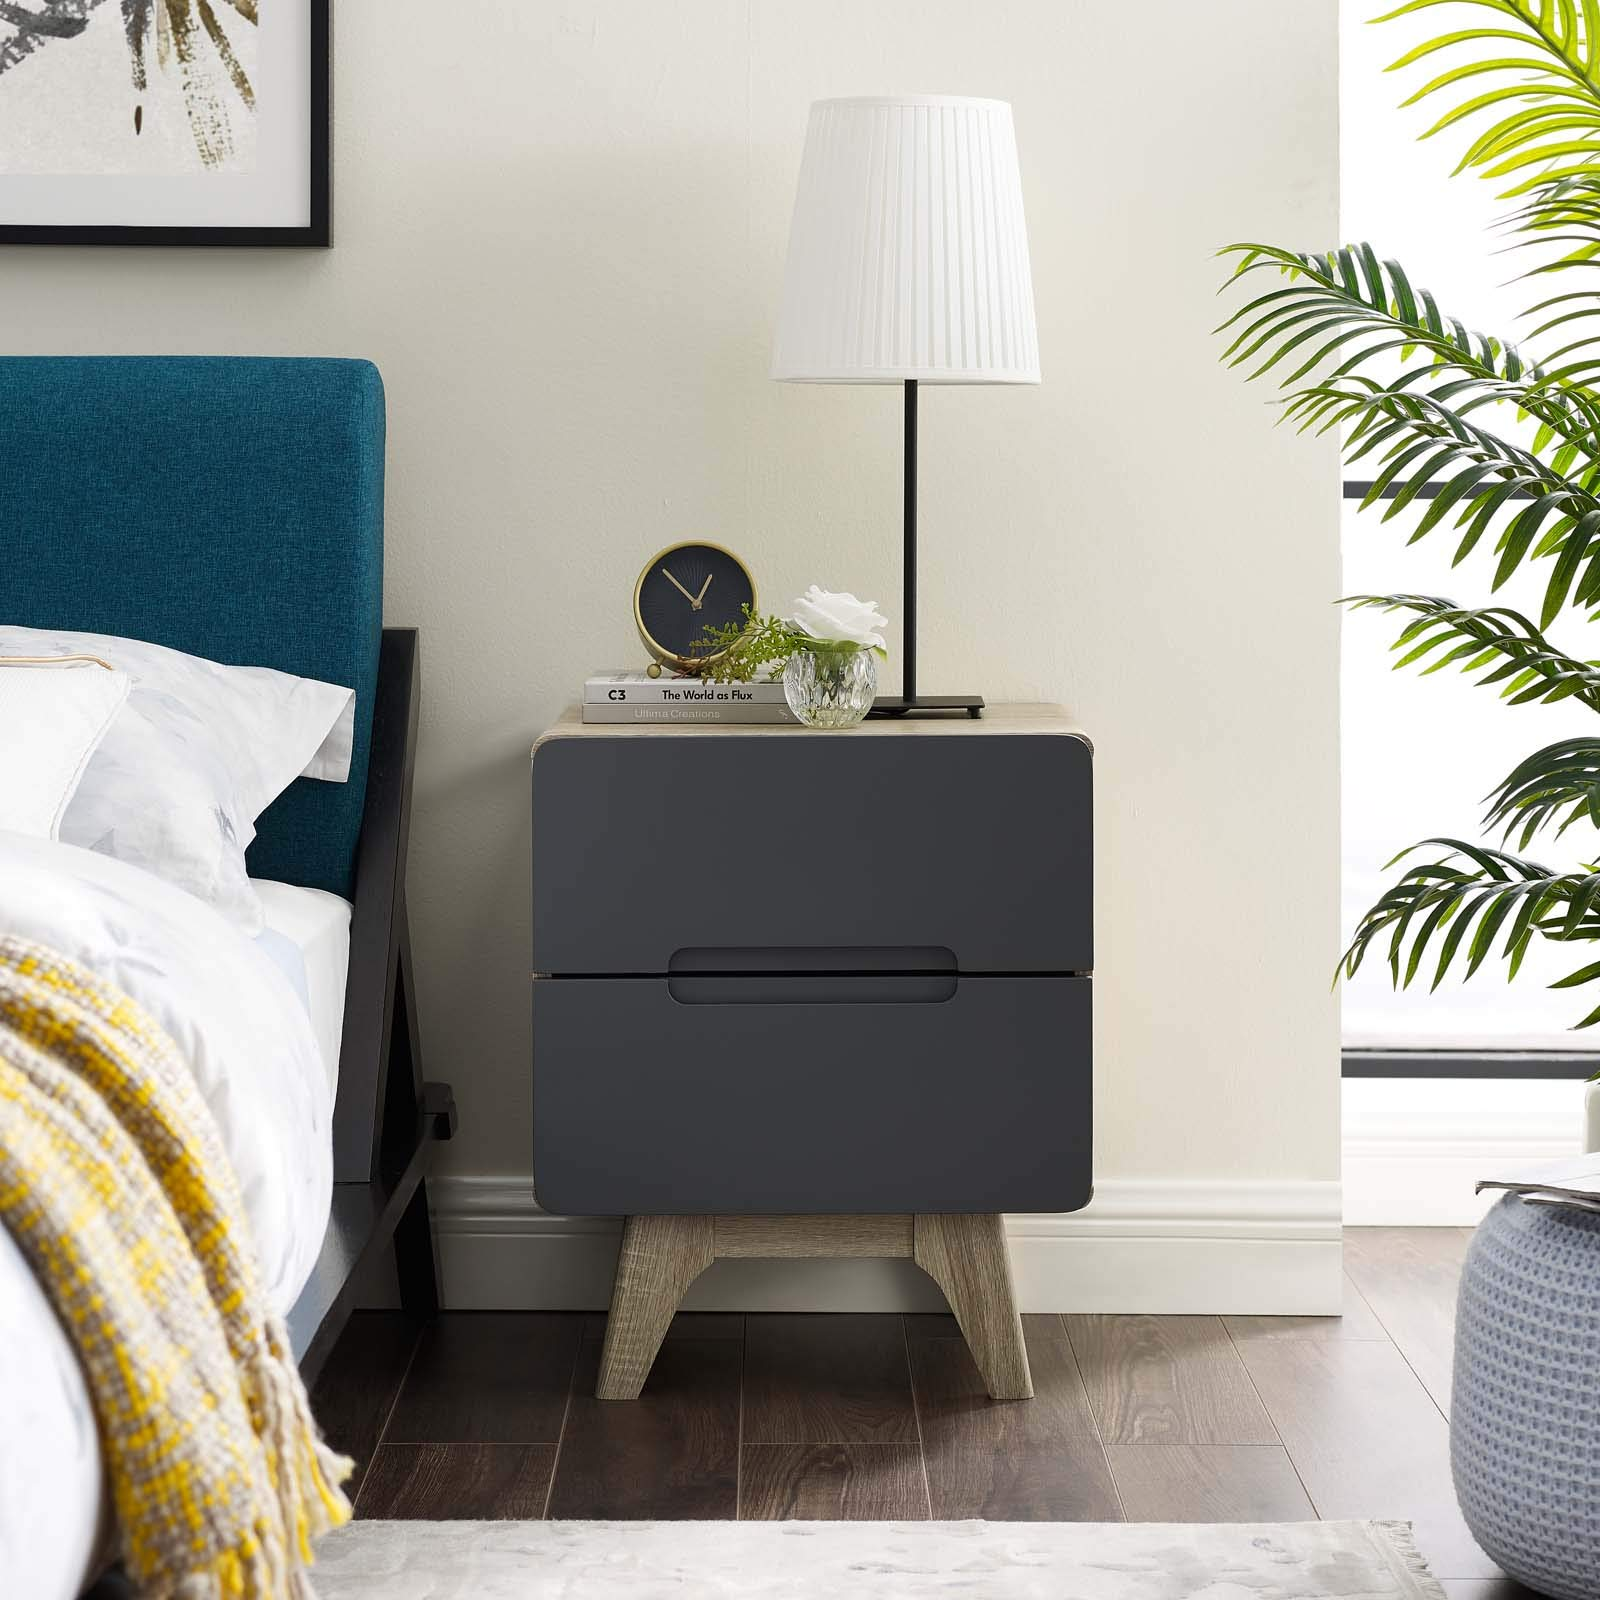 Modway Origin Contemporary Mid-Century Modern 2-Drawer Bedroom Nightstand in Natural Gray by Modway